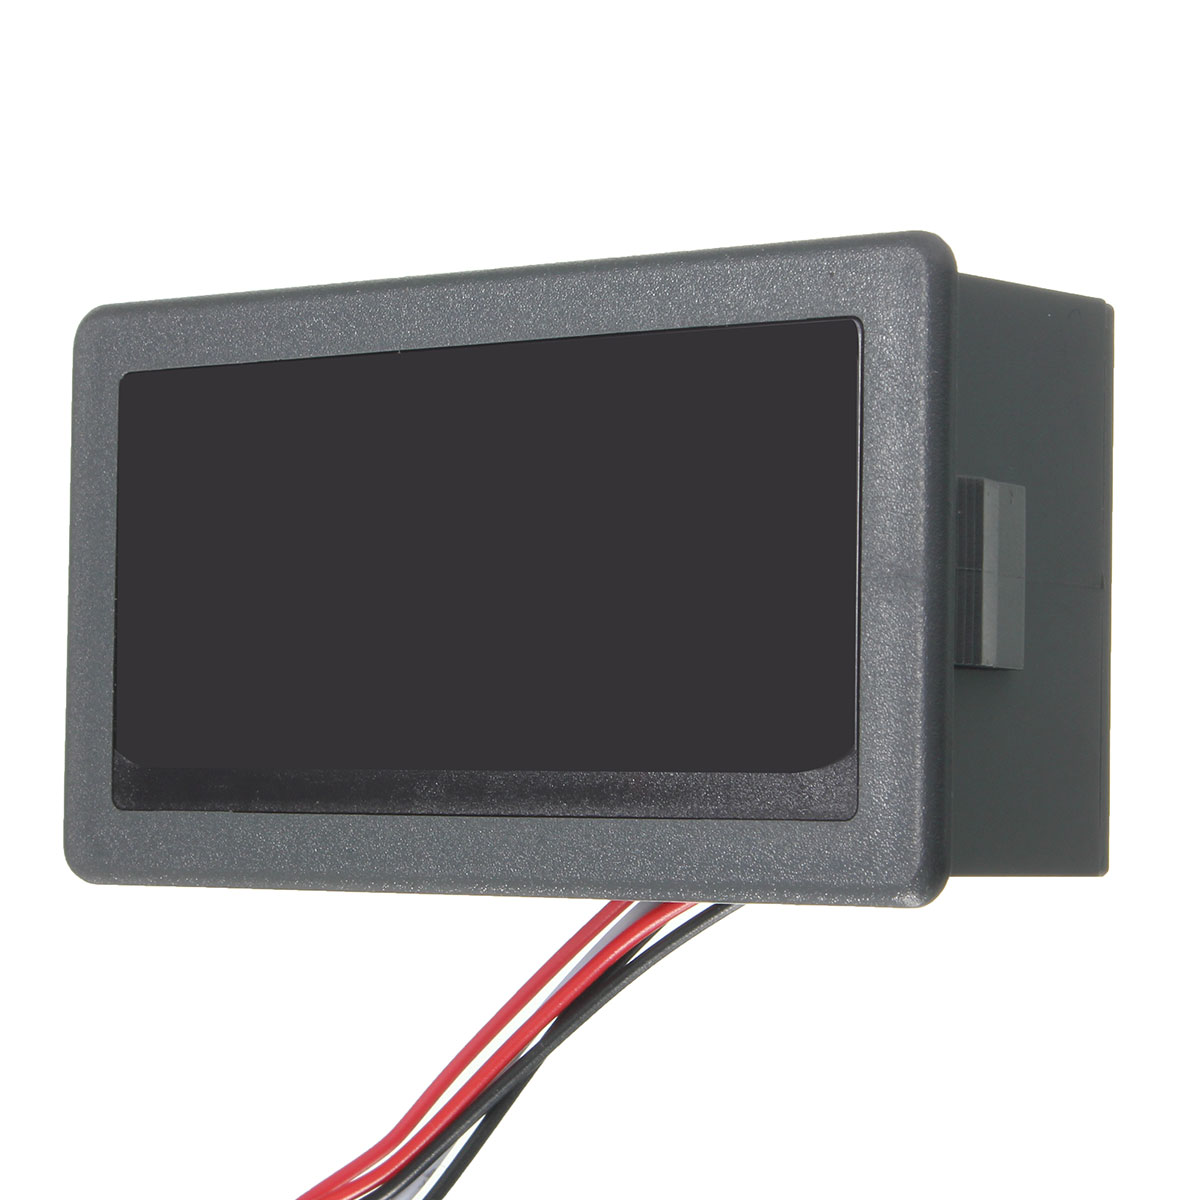 DC 6-30V 12V 24V MAX 8A PWM Speed Controller with Didital Display and Switch